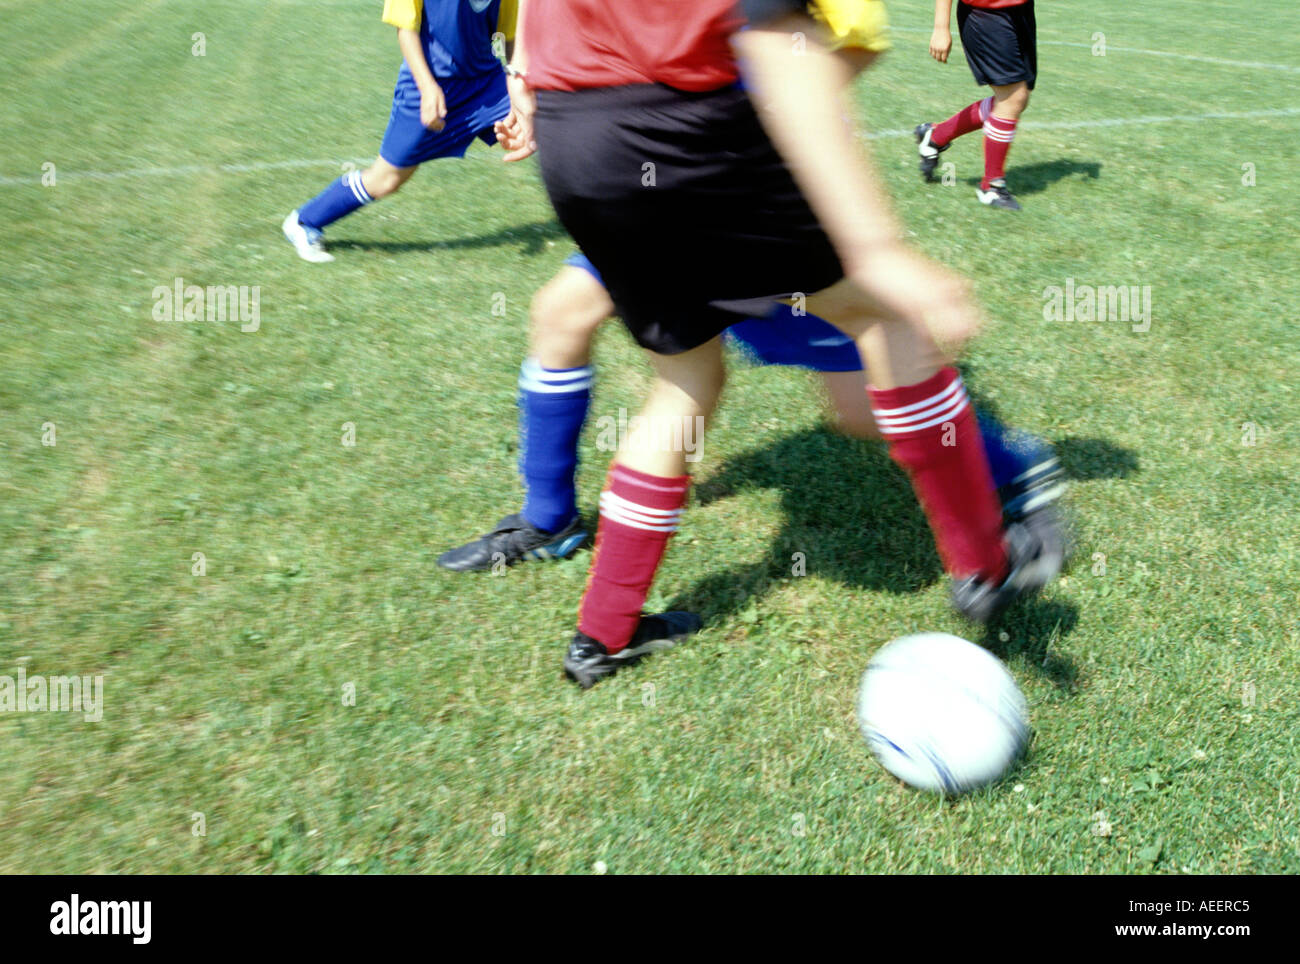 scene during football match player trying to trick his opponent - Stock Image